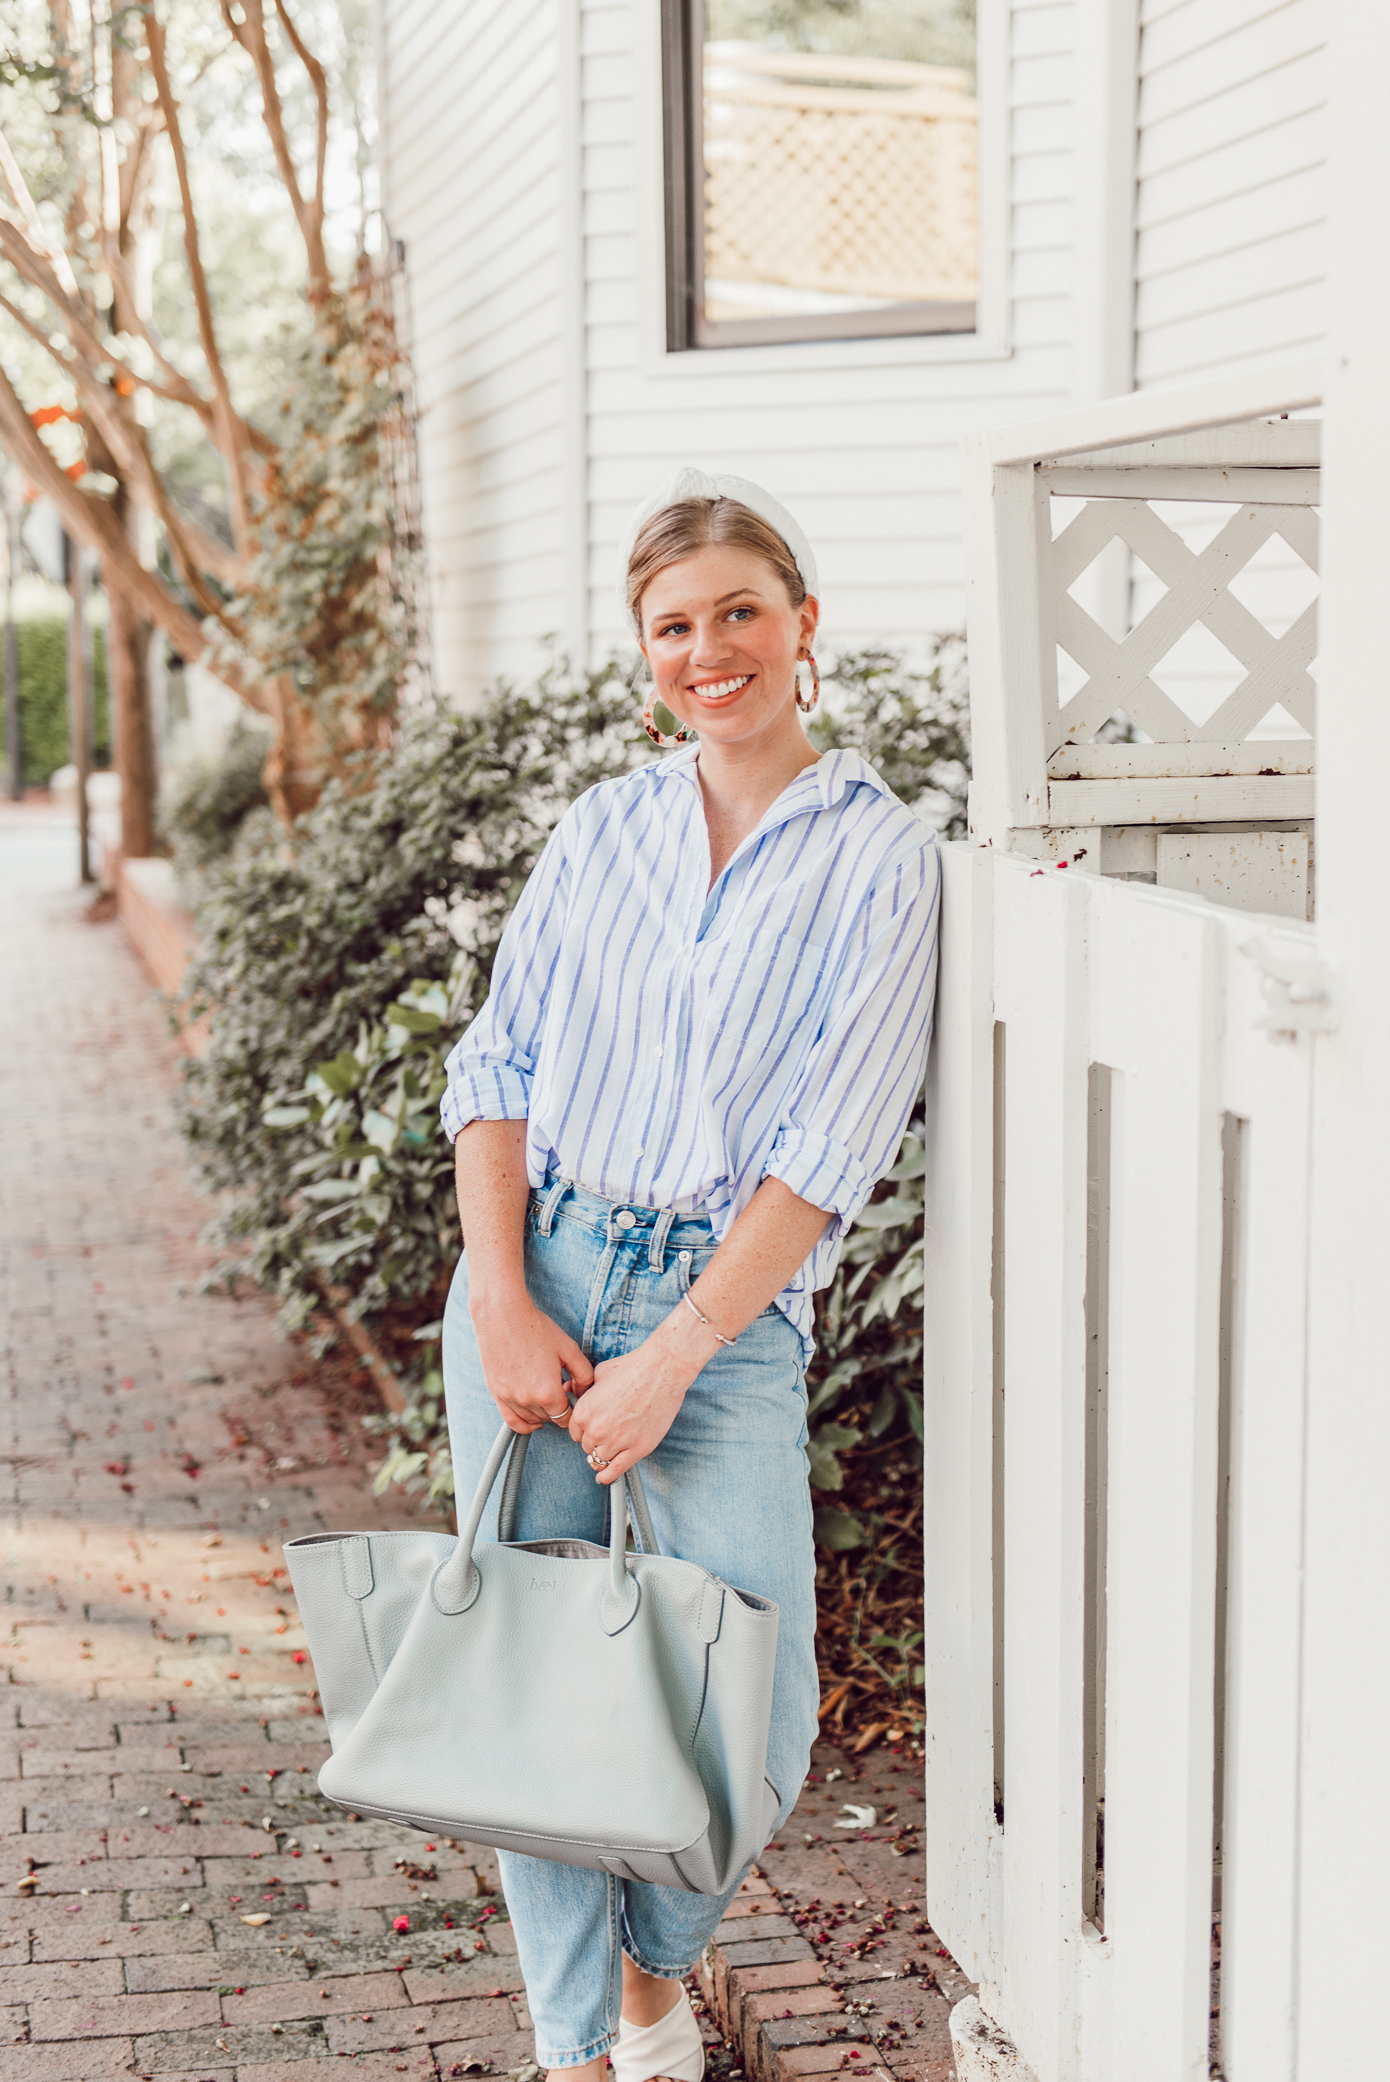 Blue and White Outfit Idea | Blue and White Striped Button Down Shirt, Relaxed Boyfriend Jeans under $100, Lele Sadoughi Headband | Louella Reese